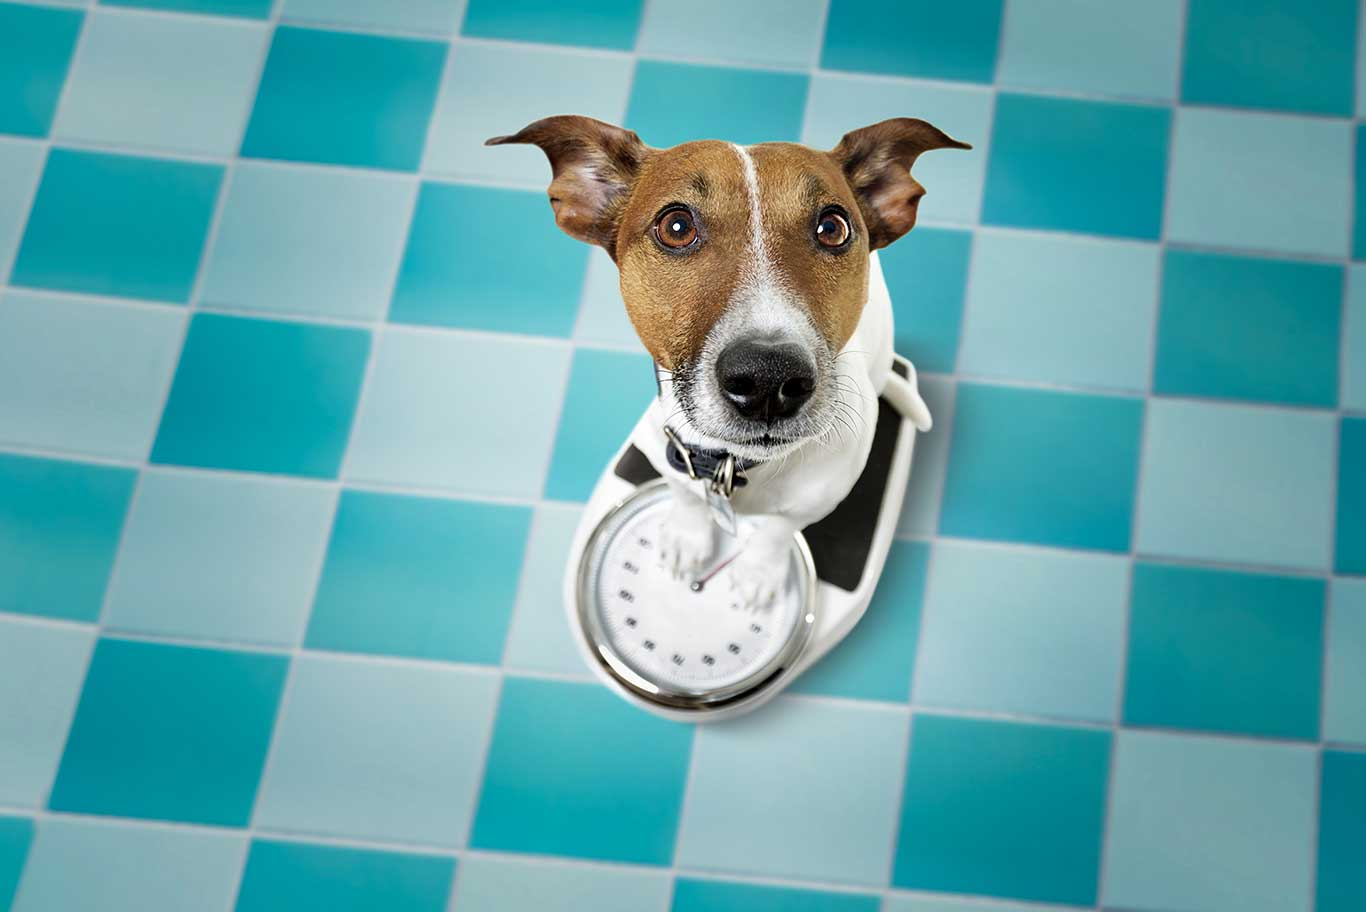 Cute Terrier hold clock and waiting for dinner